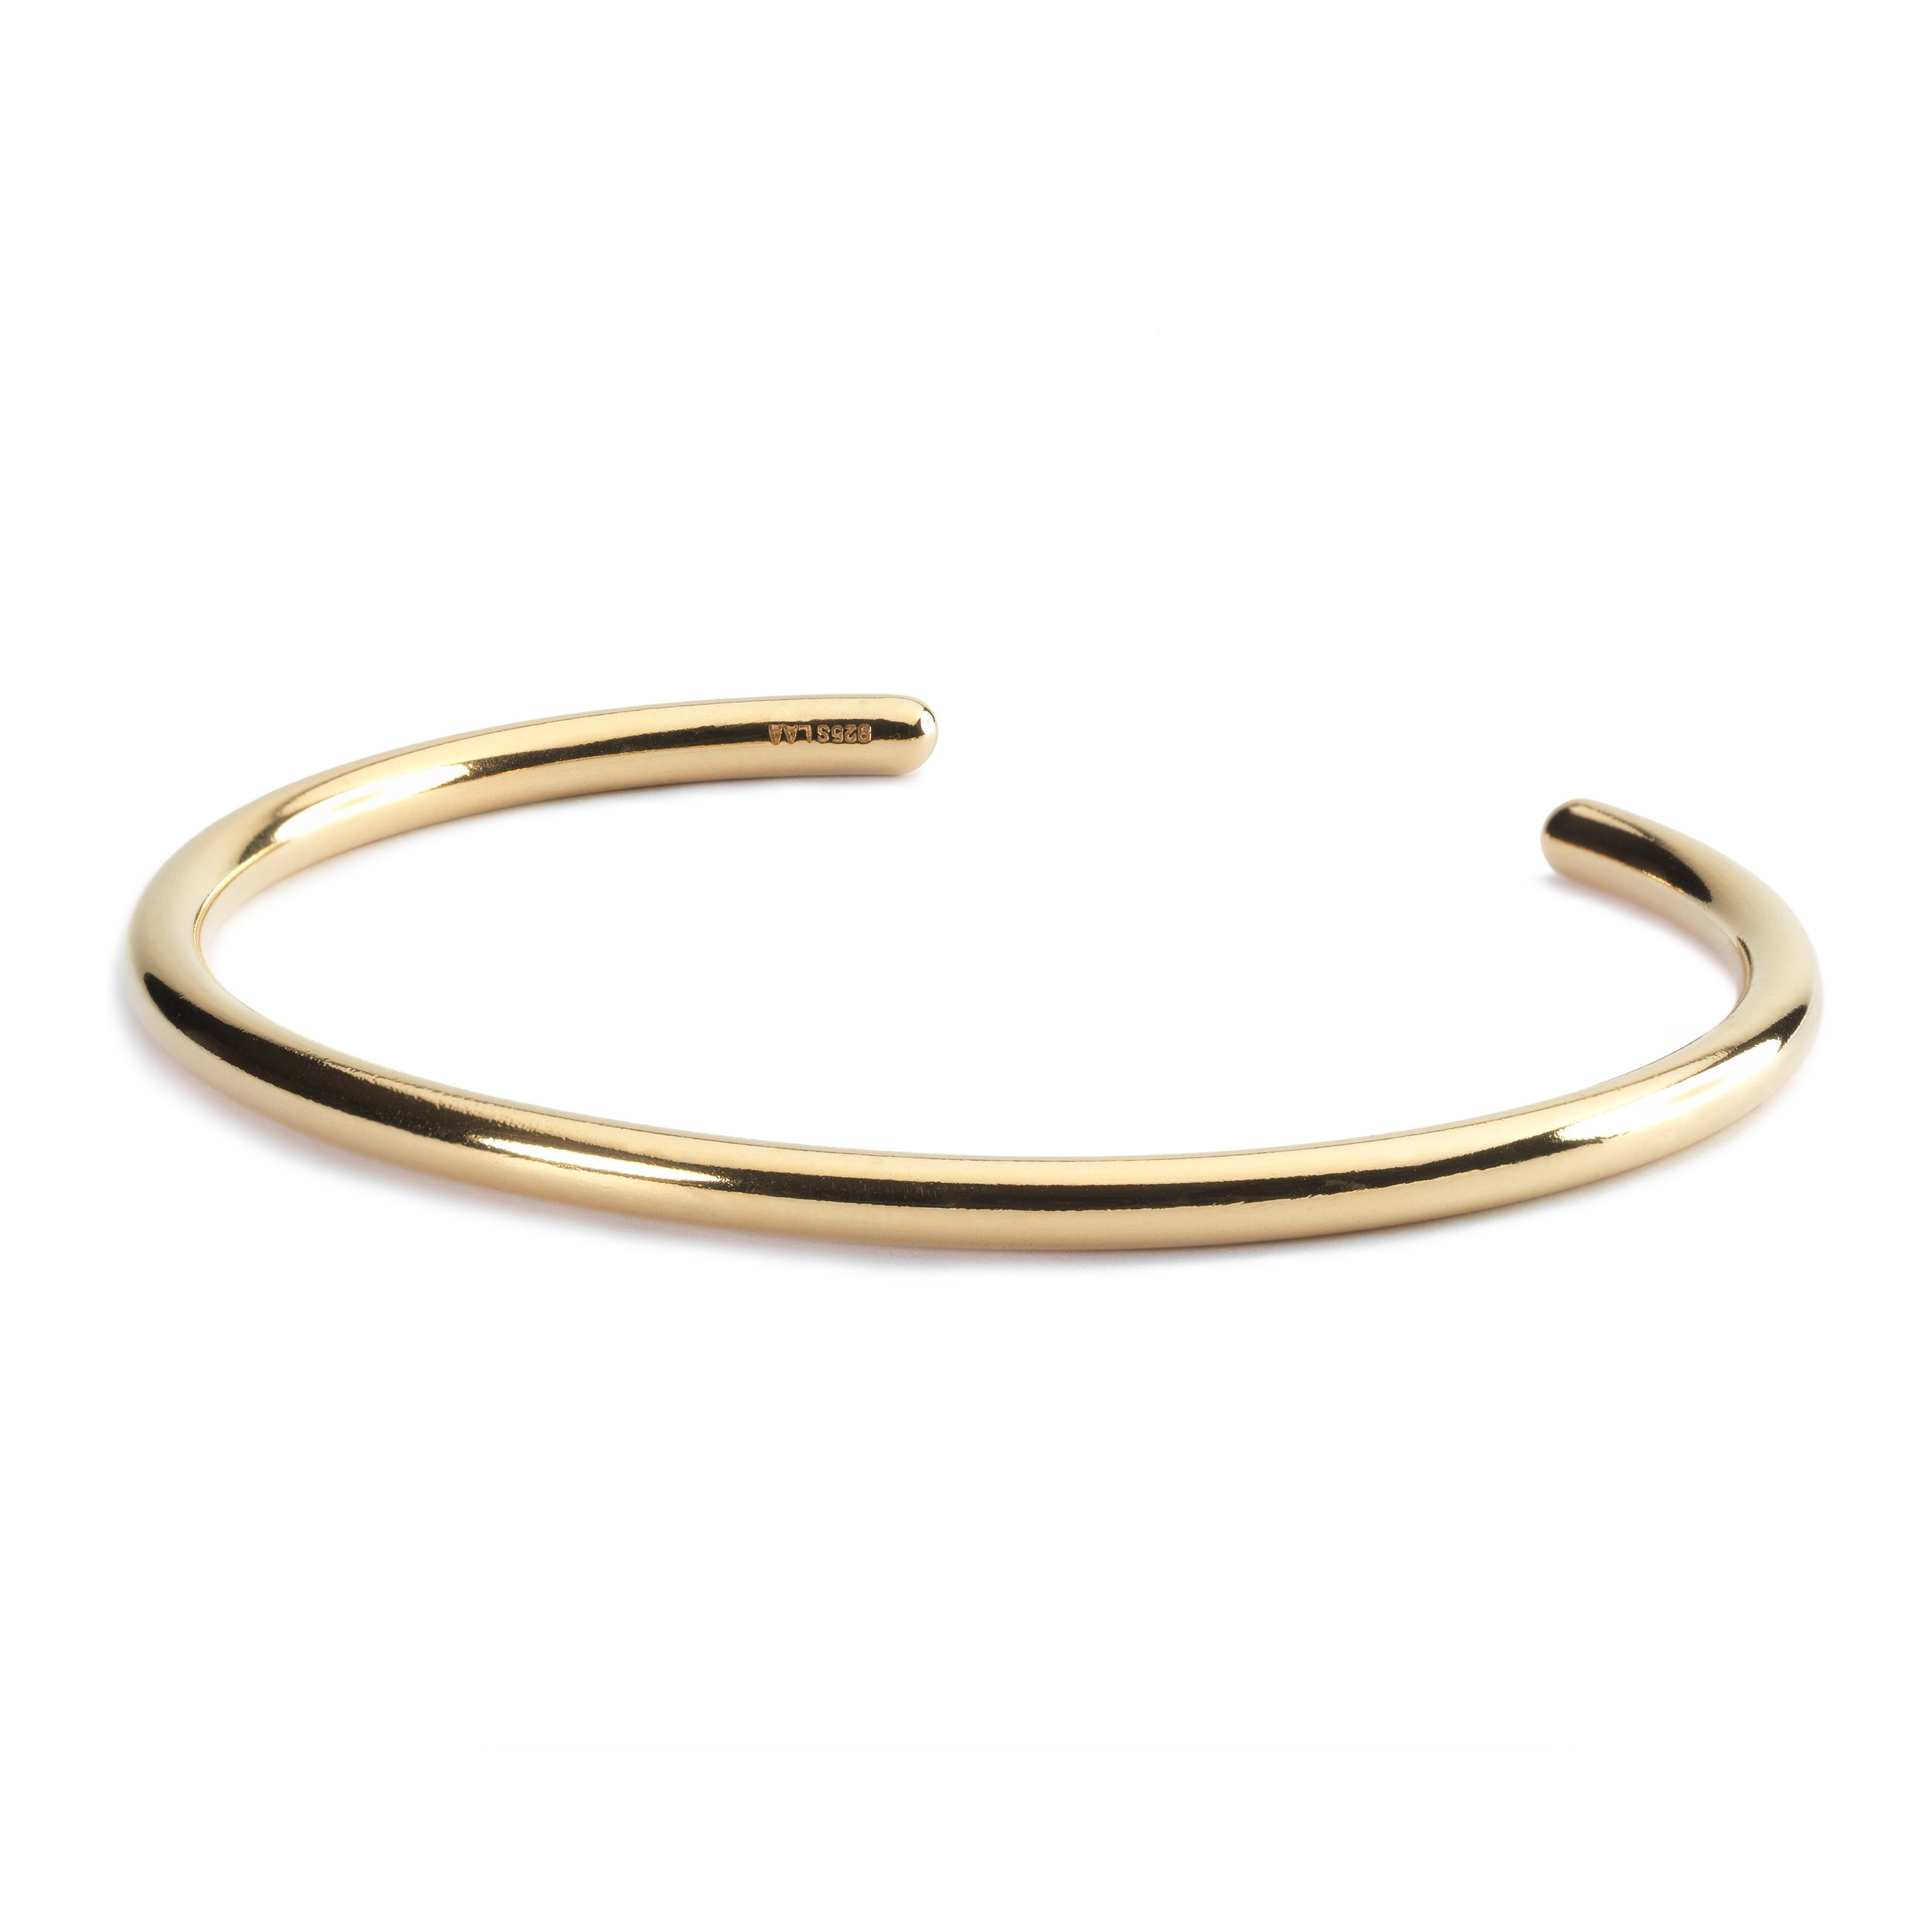 design buy product bangles fashion wholesale girls bangle bracelet popular gold latest detail